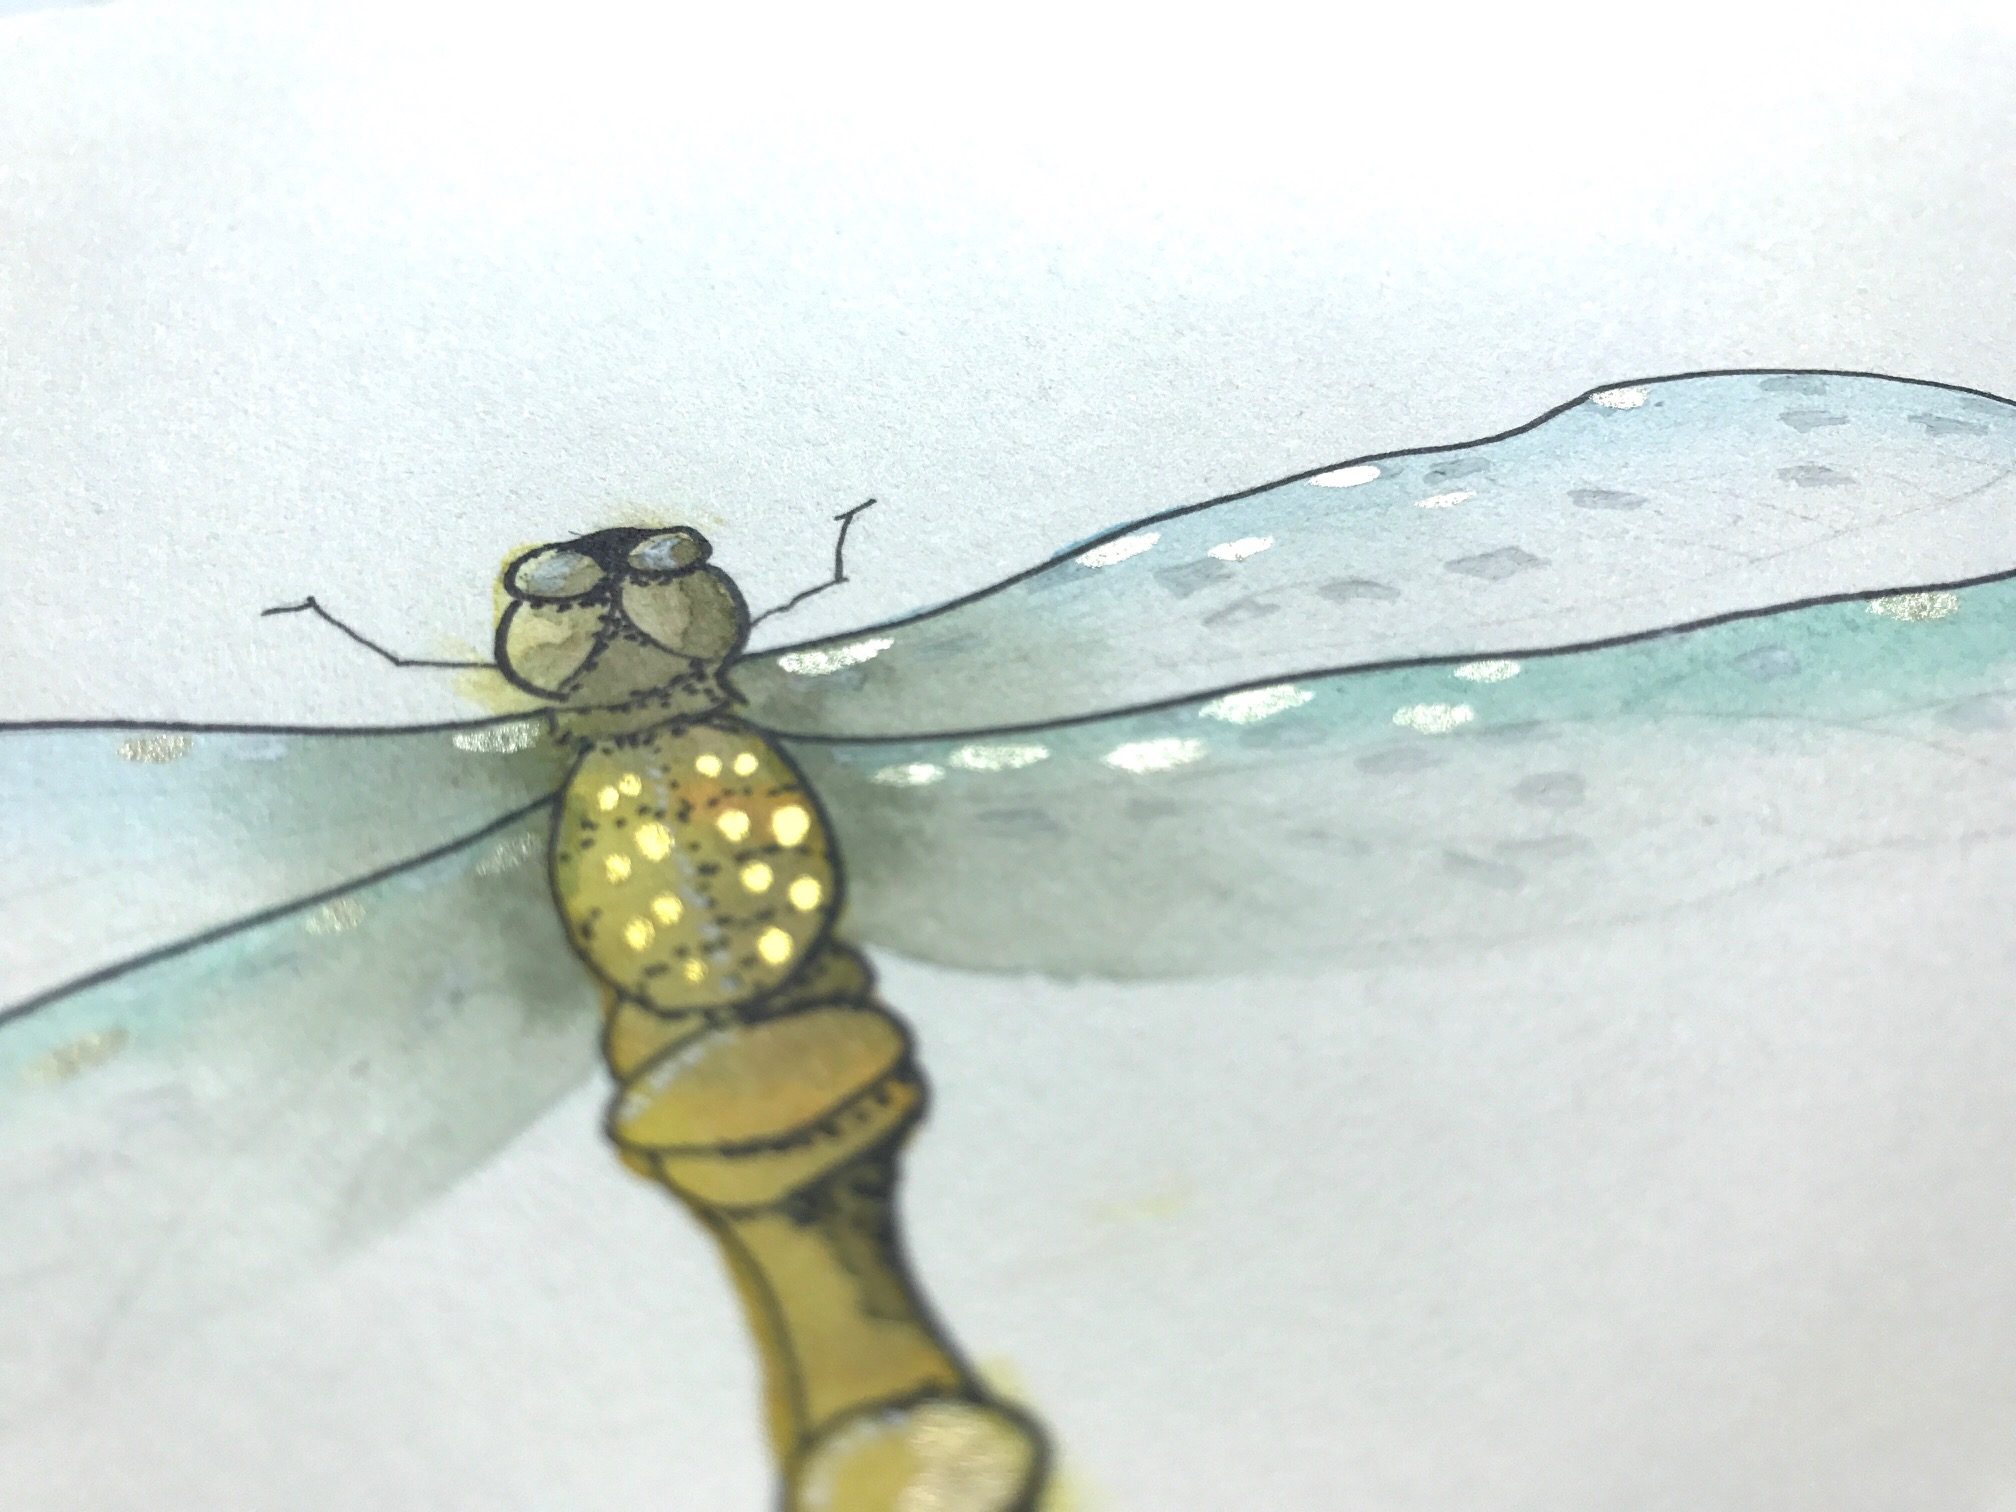 adding white gel pen to dragonfly